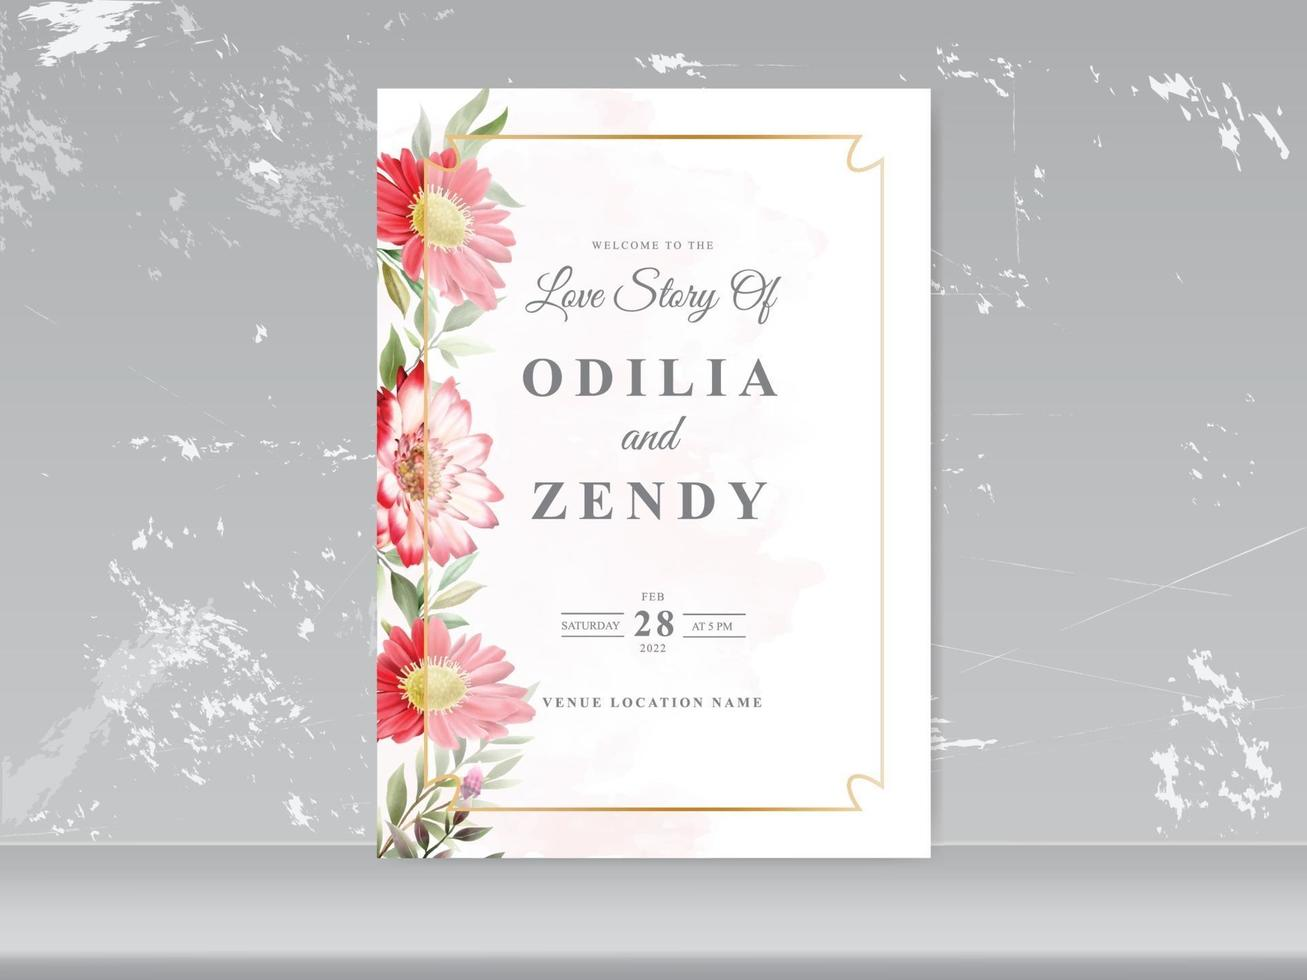 Wedding invitation cards with greenery floral design vector